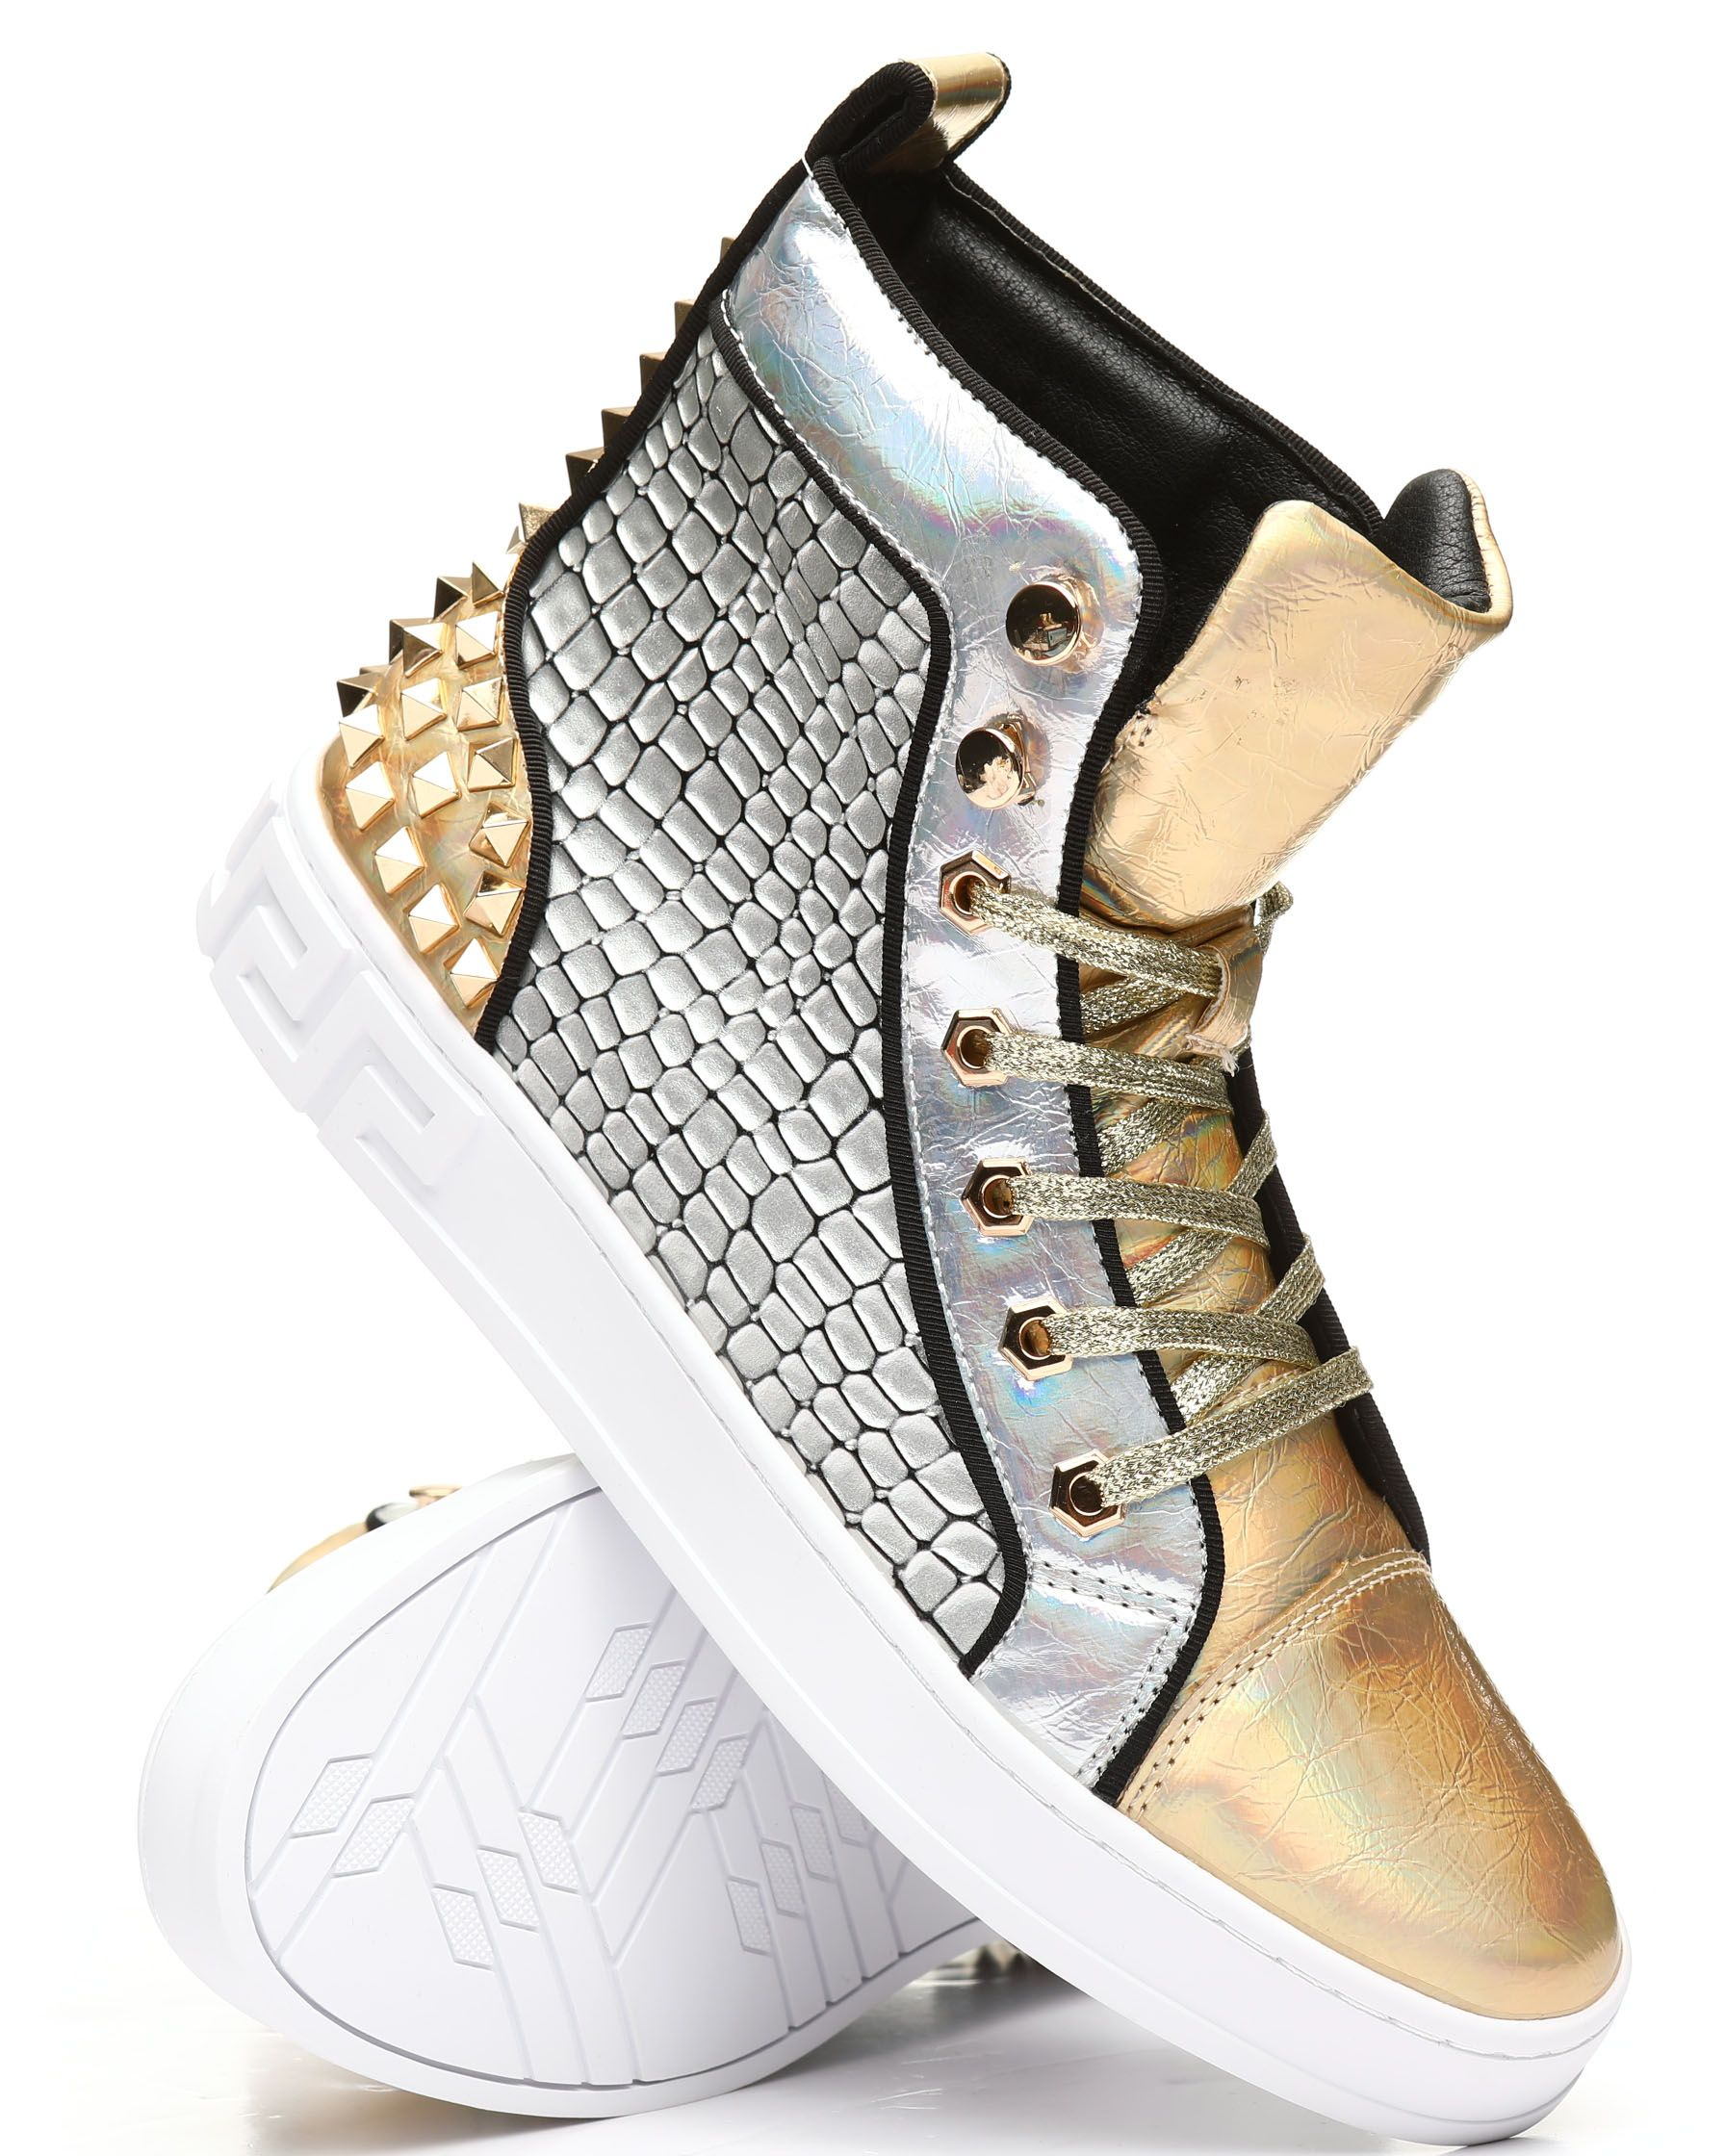 High Top Studded Metallic Sneakers From Aurelio Garcia At Drjays